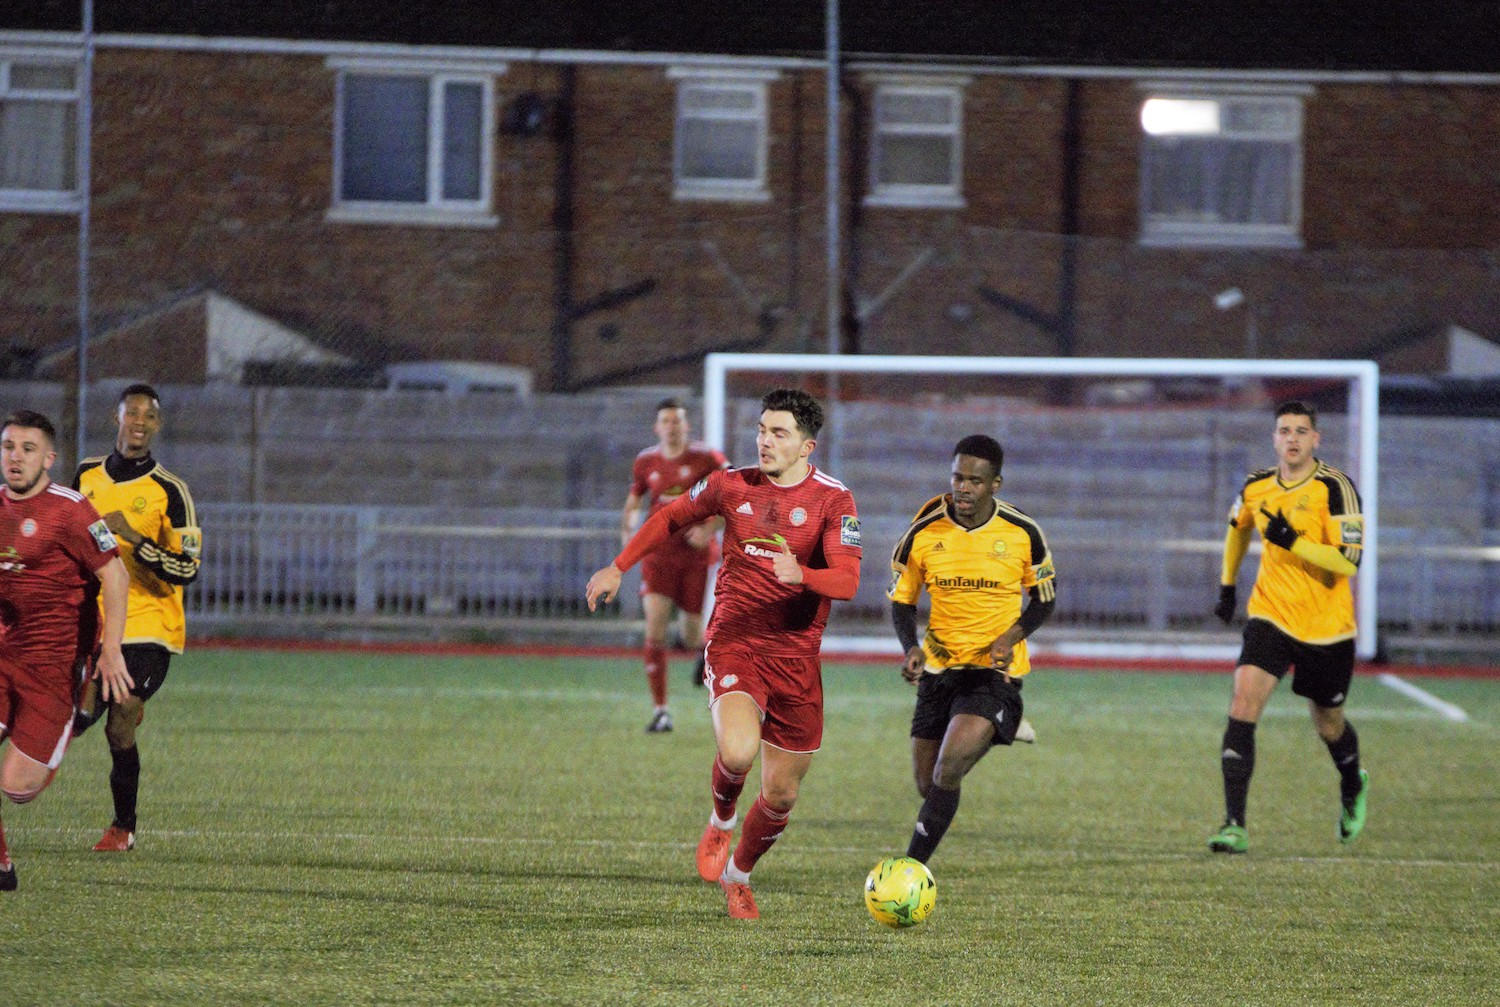 Read the full article - FIVE FACTS | Merstham